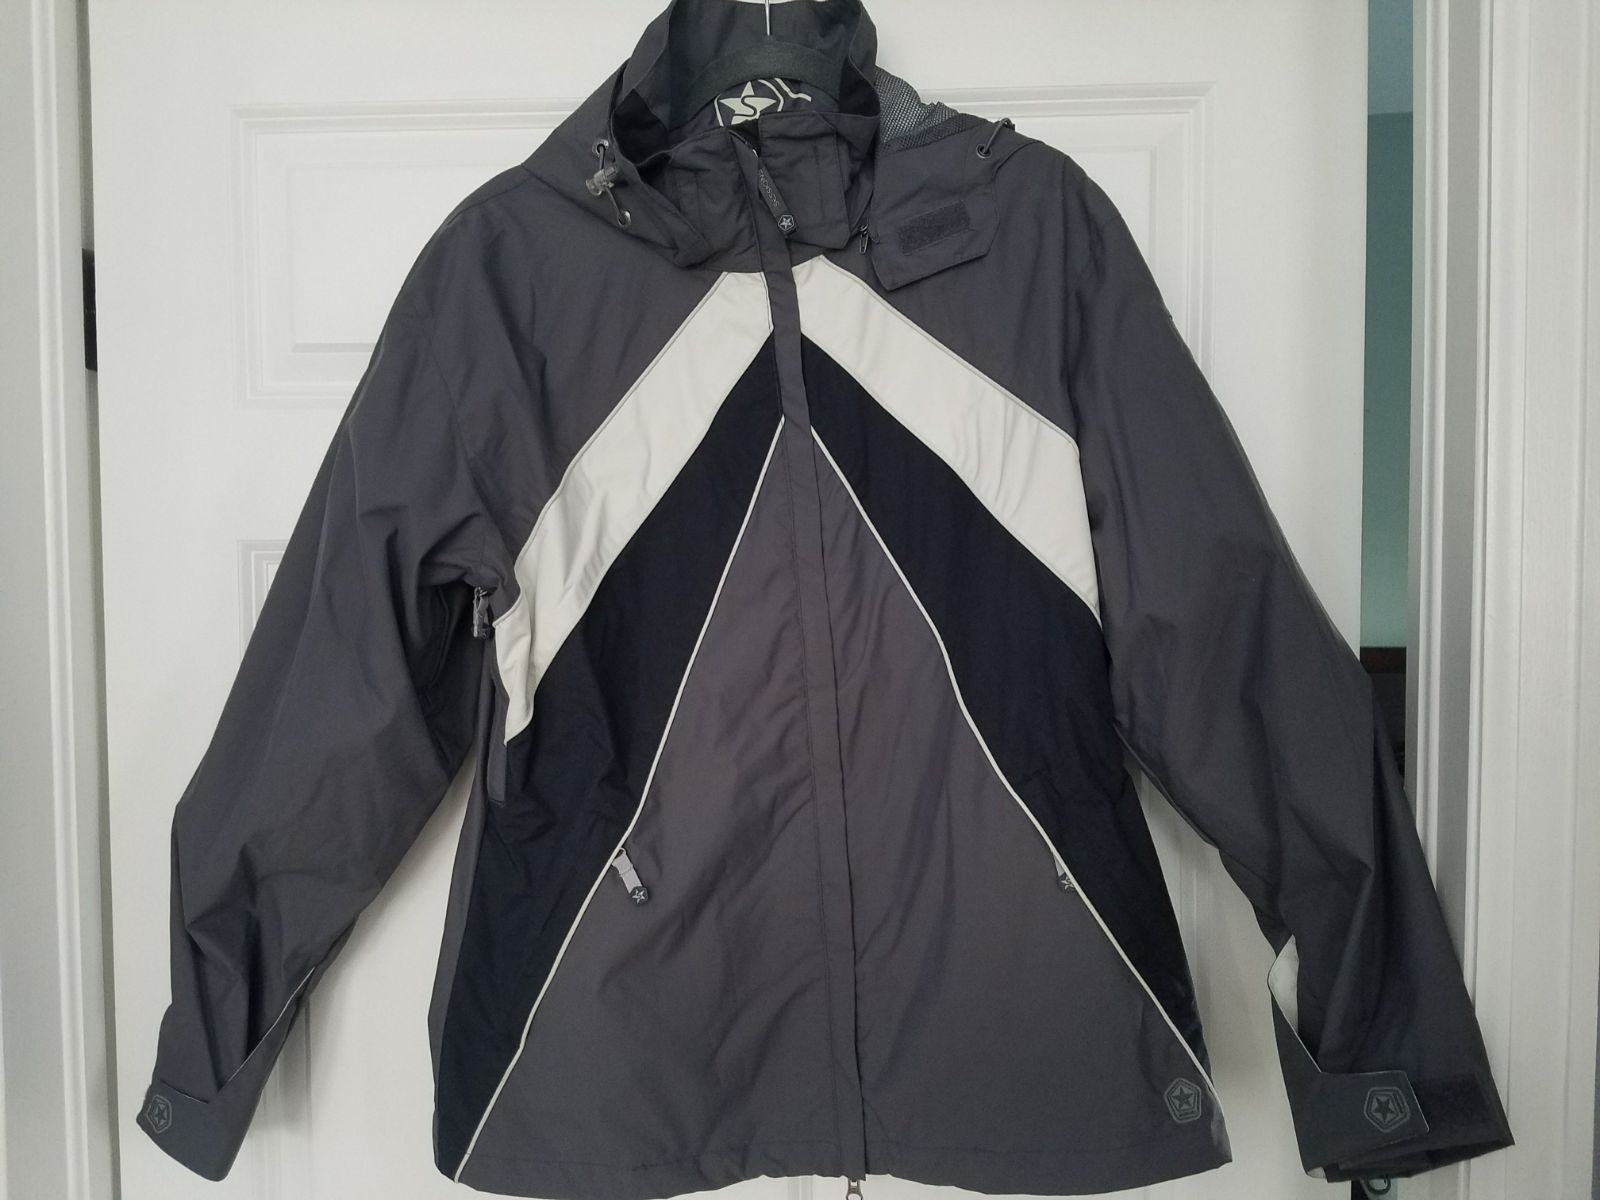 Sessions Woman's Jacket Size Large